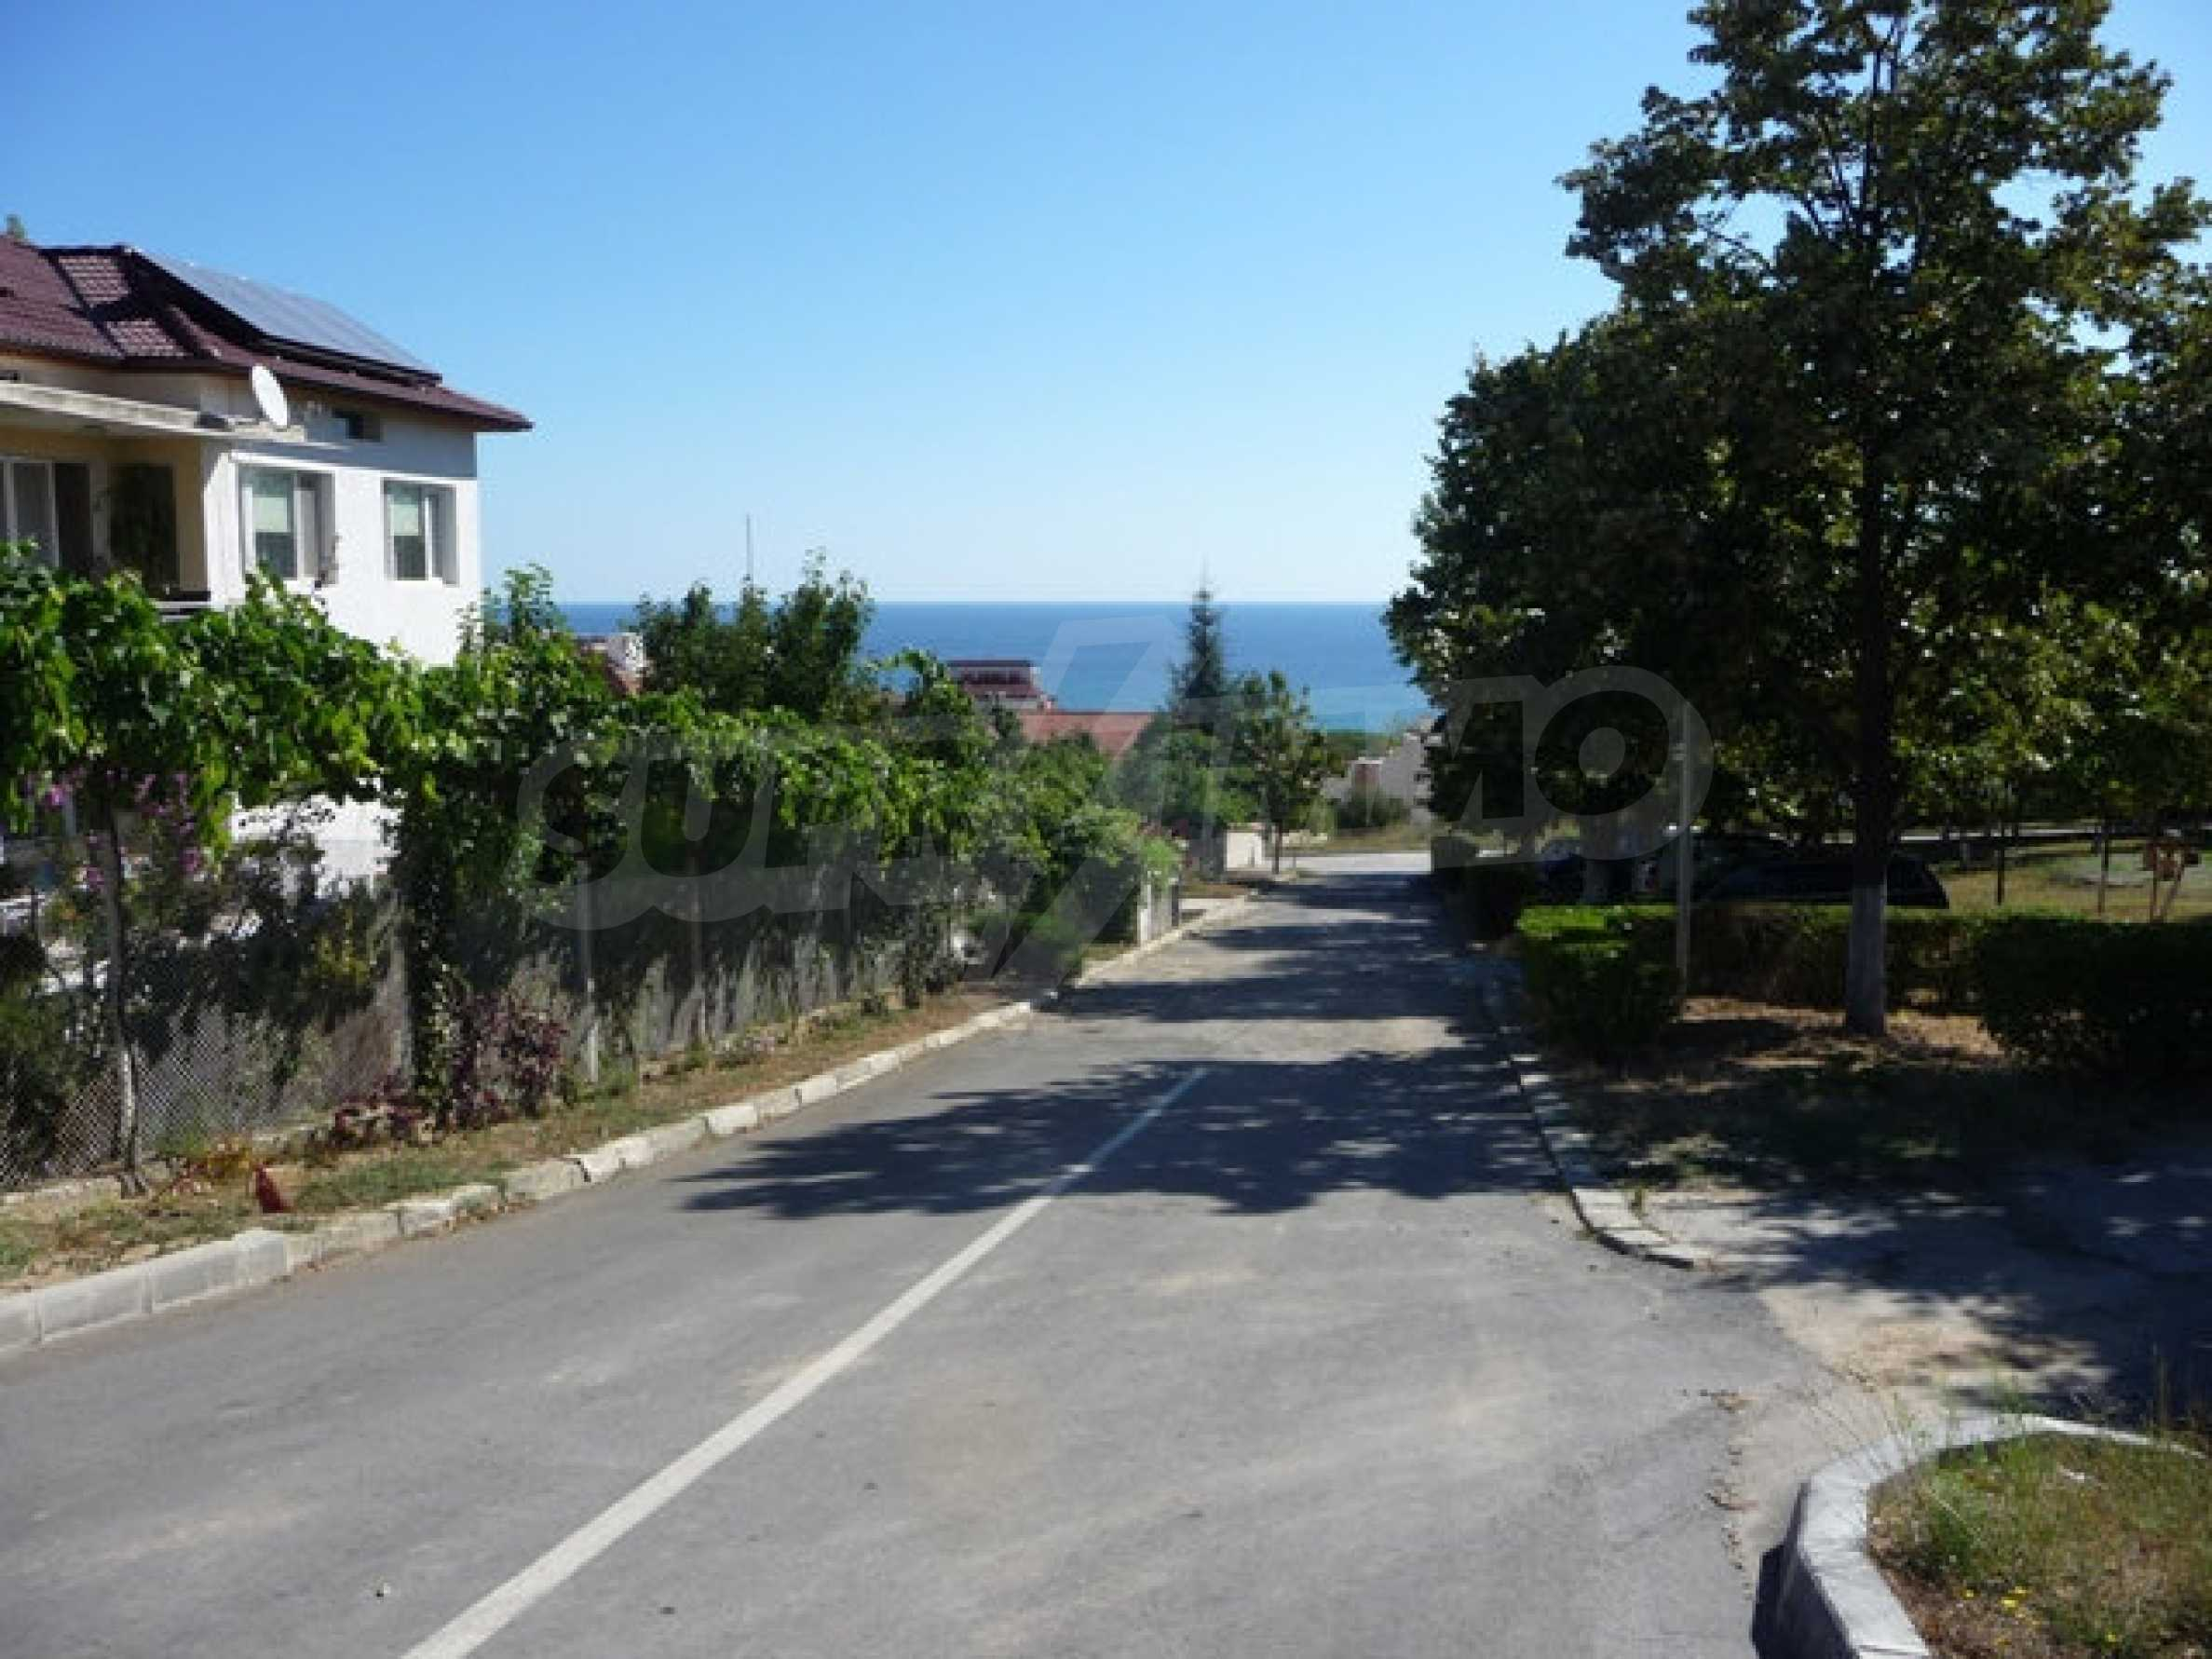 House with shop in Byala (Varna) 28